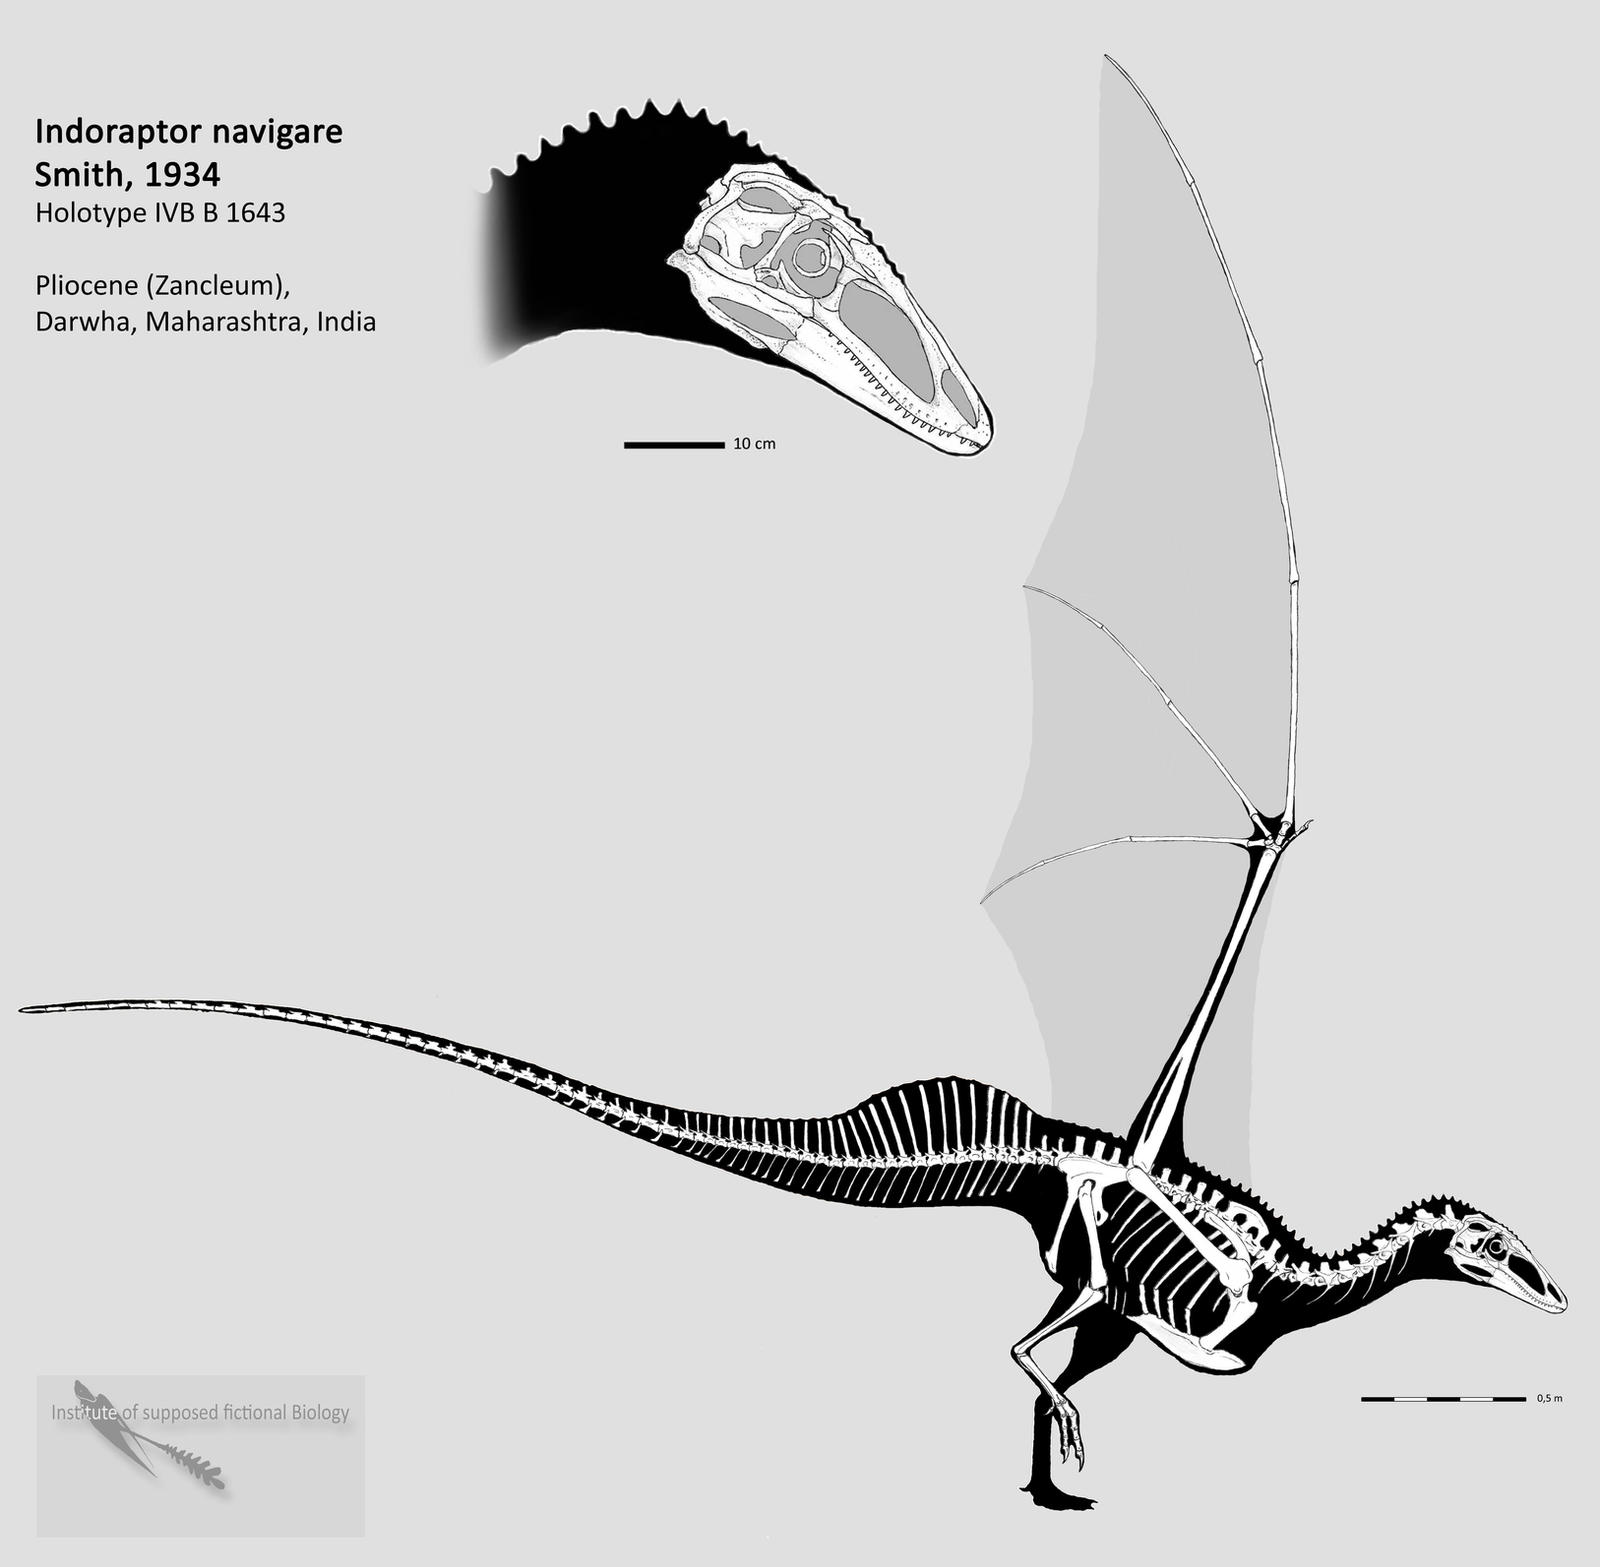 Indoraptor complete skeleton by Hyrotrioskjan